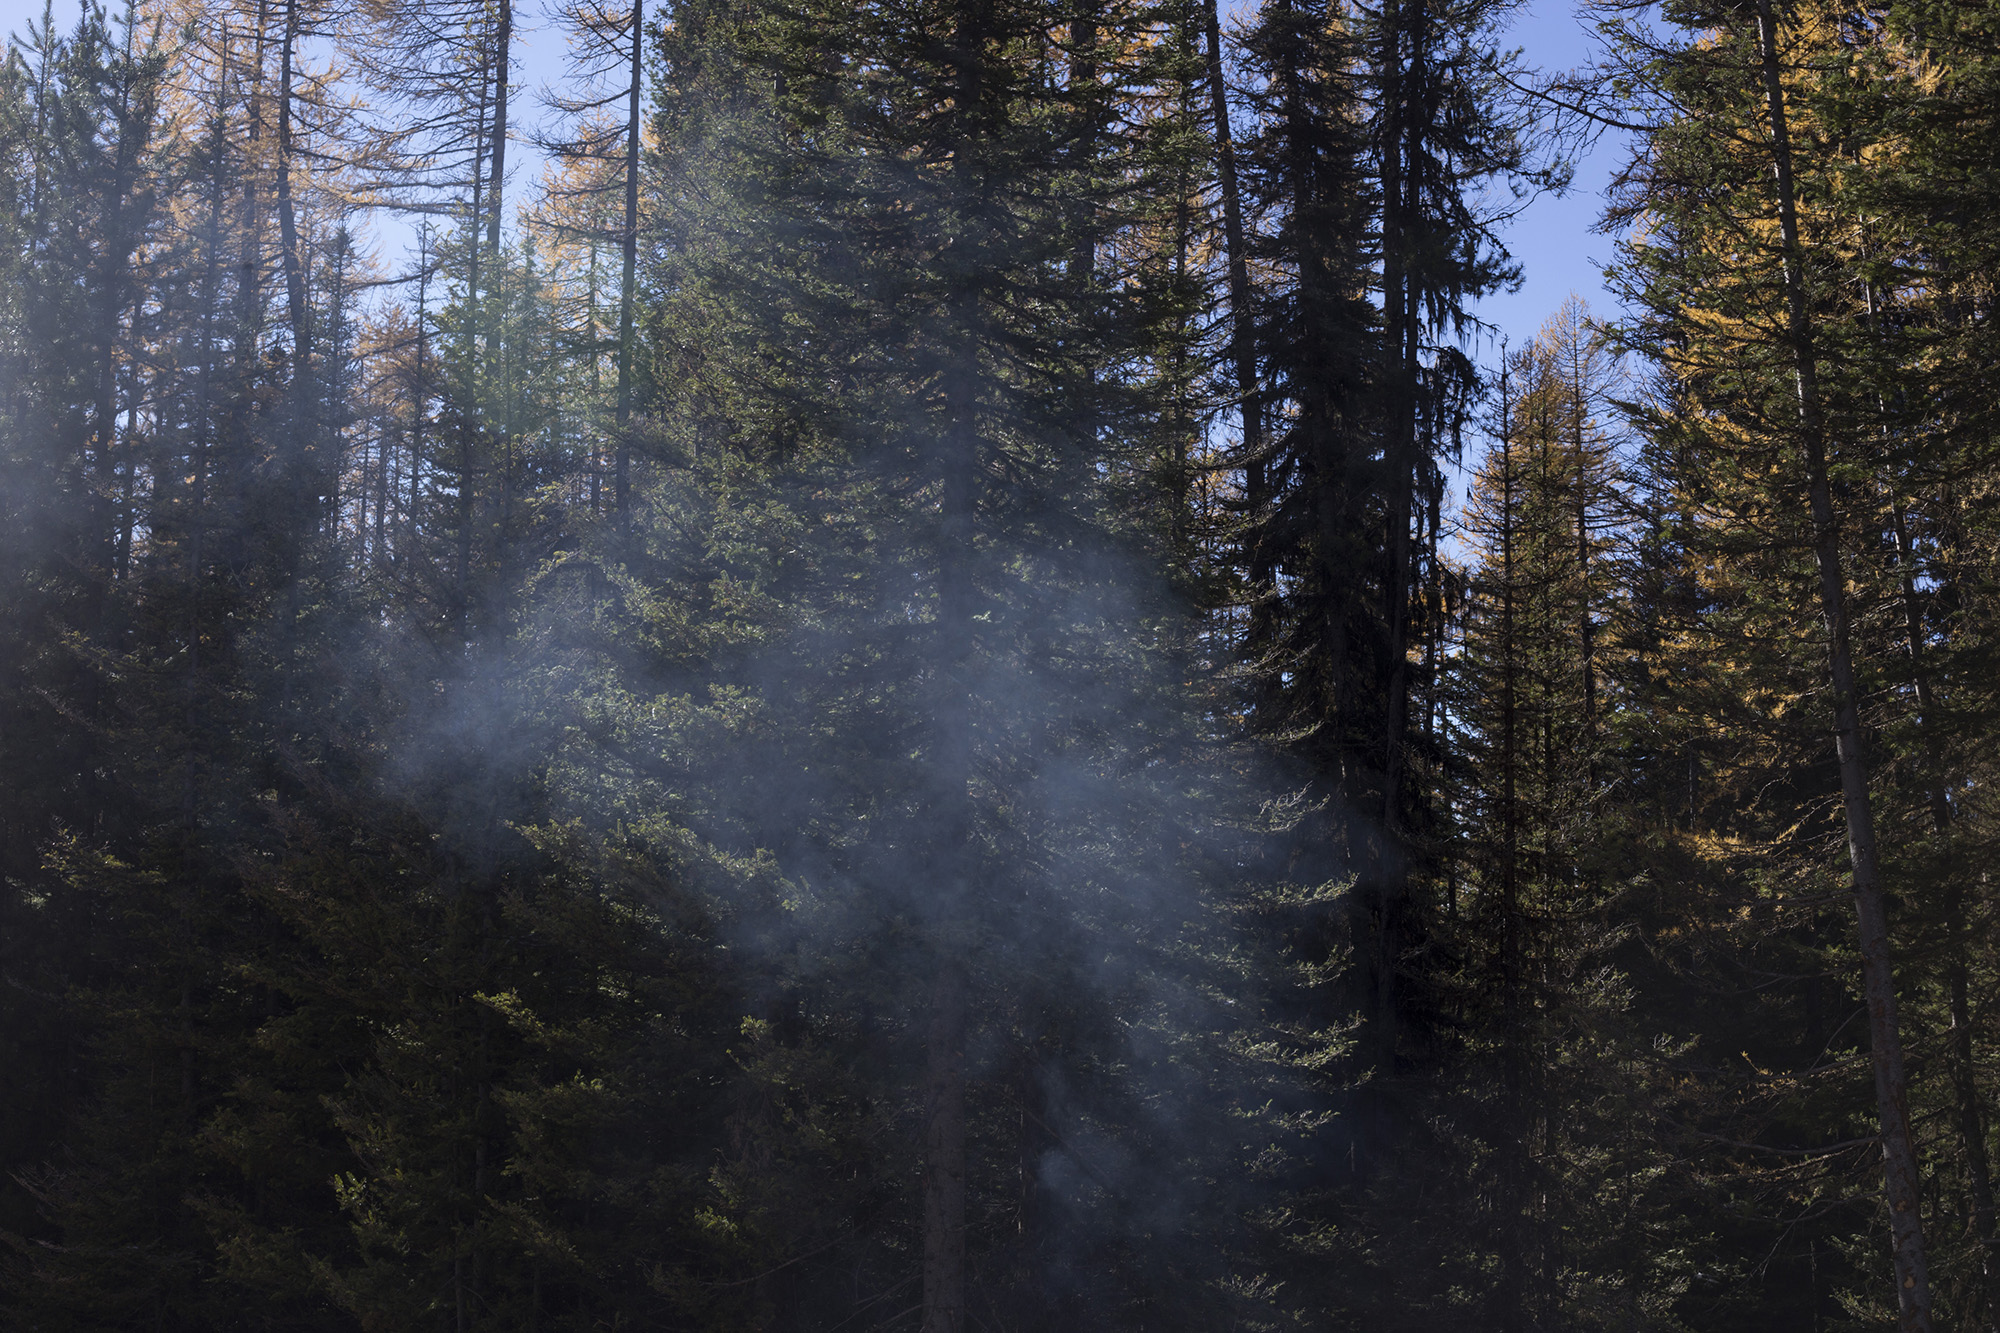 Smoke rises from a smoldering remnant of the Rice Ridge fire that burned over 150,000 acres in the forest outside of Seeley Lake, Mont., on Thursday, October 29, 2017. (Brittany Greeson/GroundTruth)